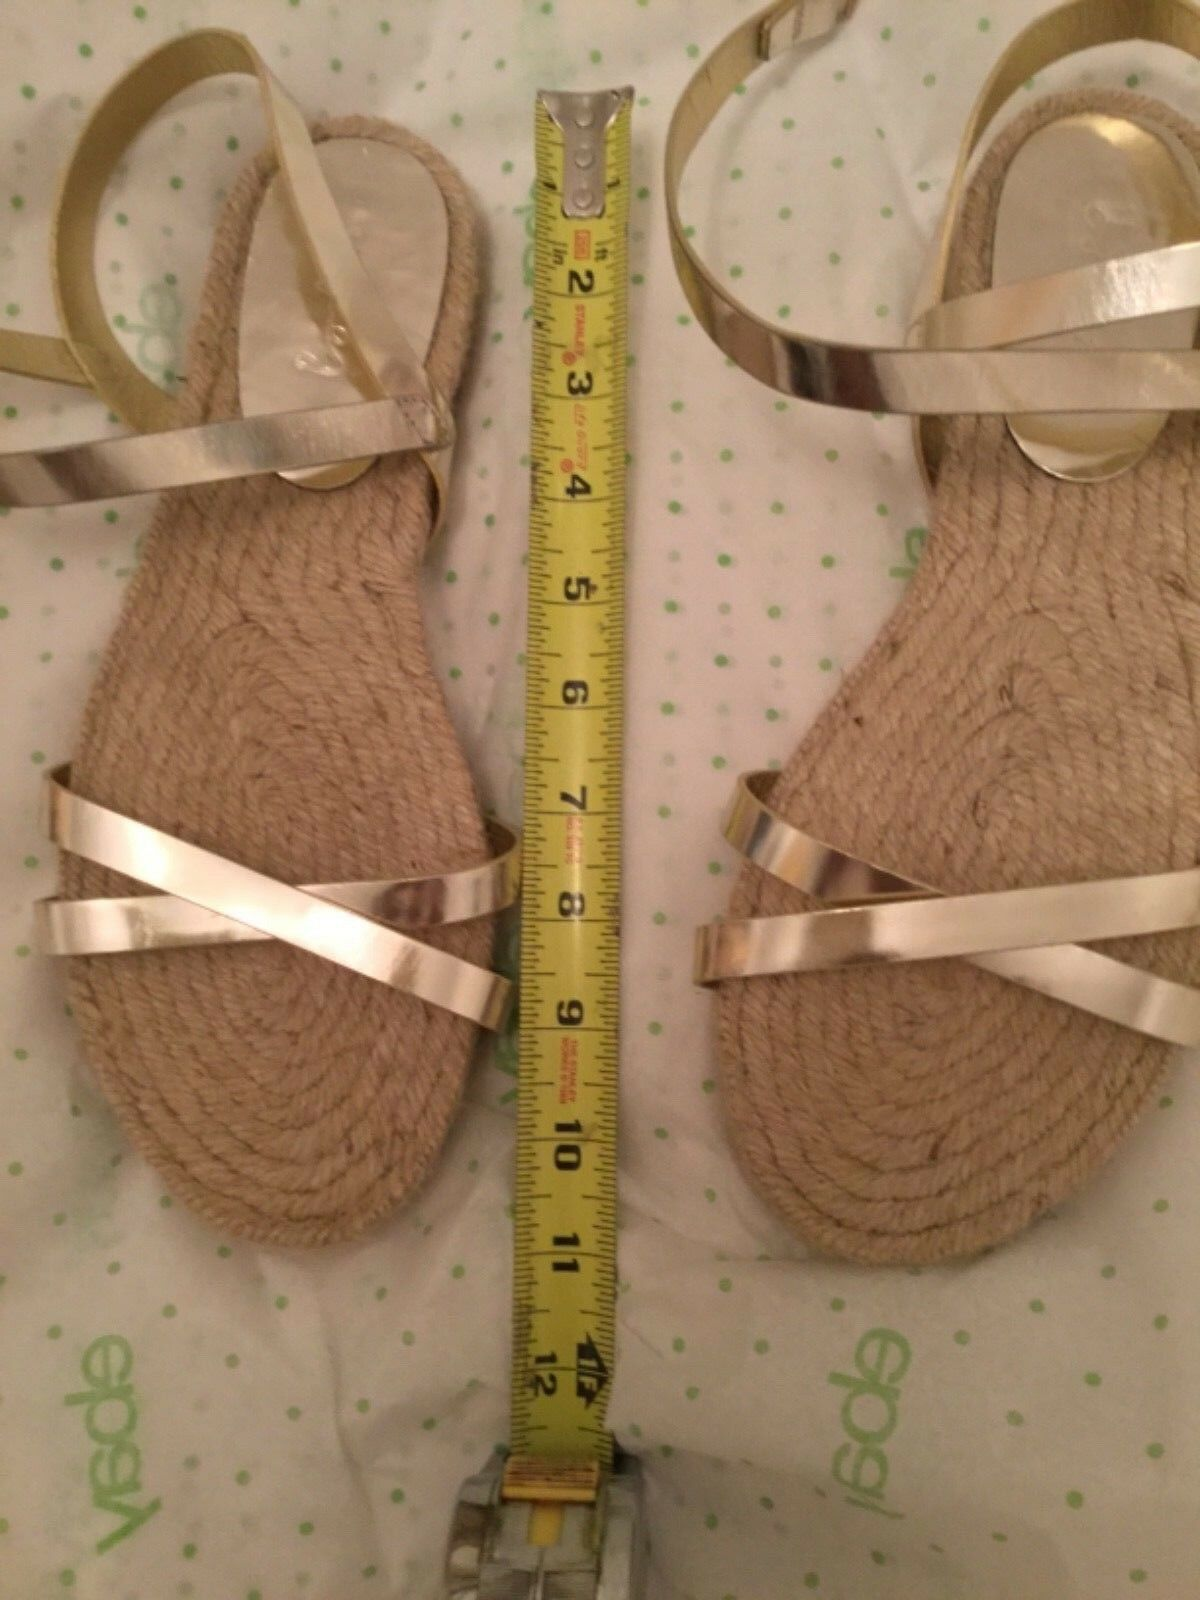 NEW Boden donna's oro Leather Jute Sole Espadrille Espadrille Espadrille Sandal - 12 002cca